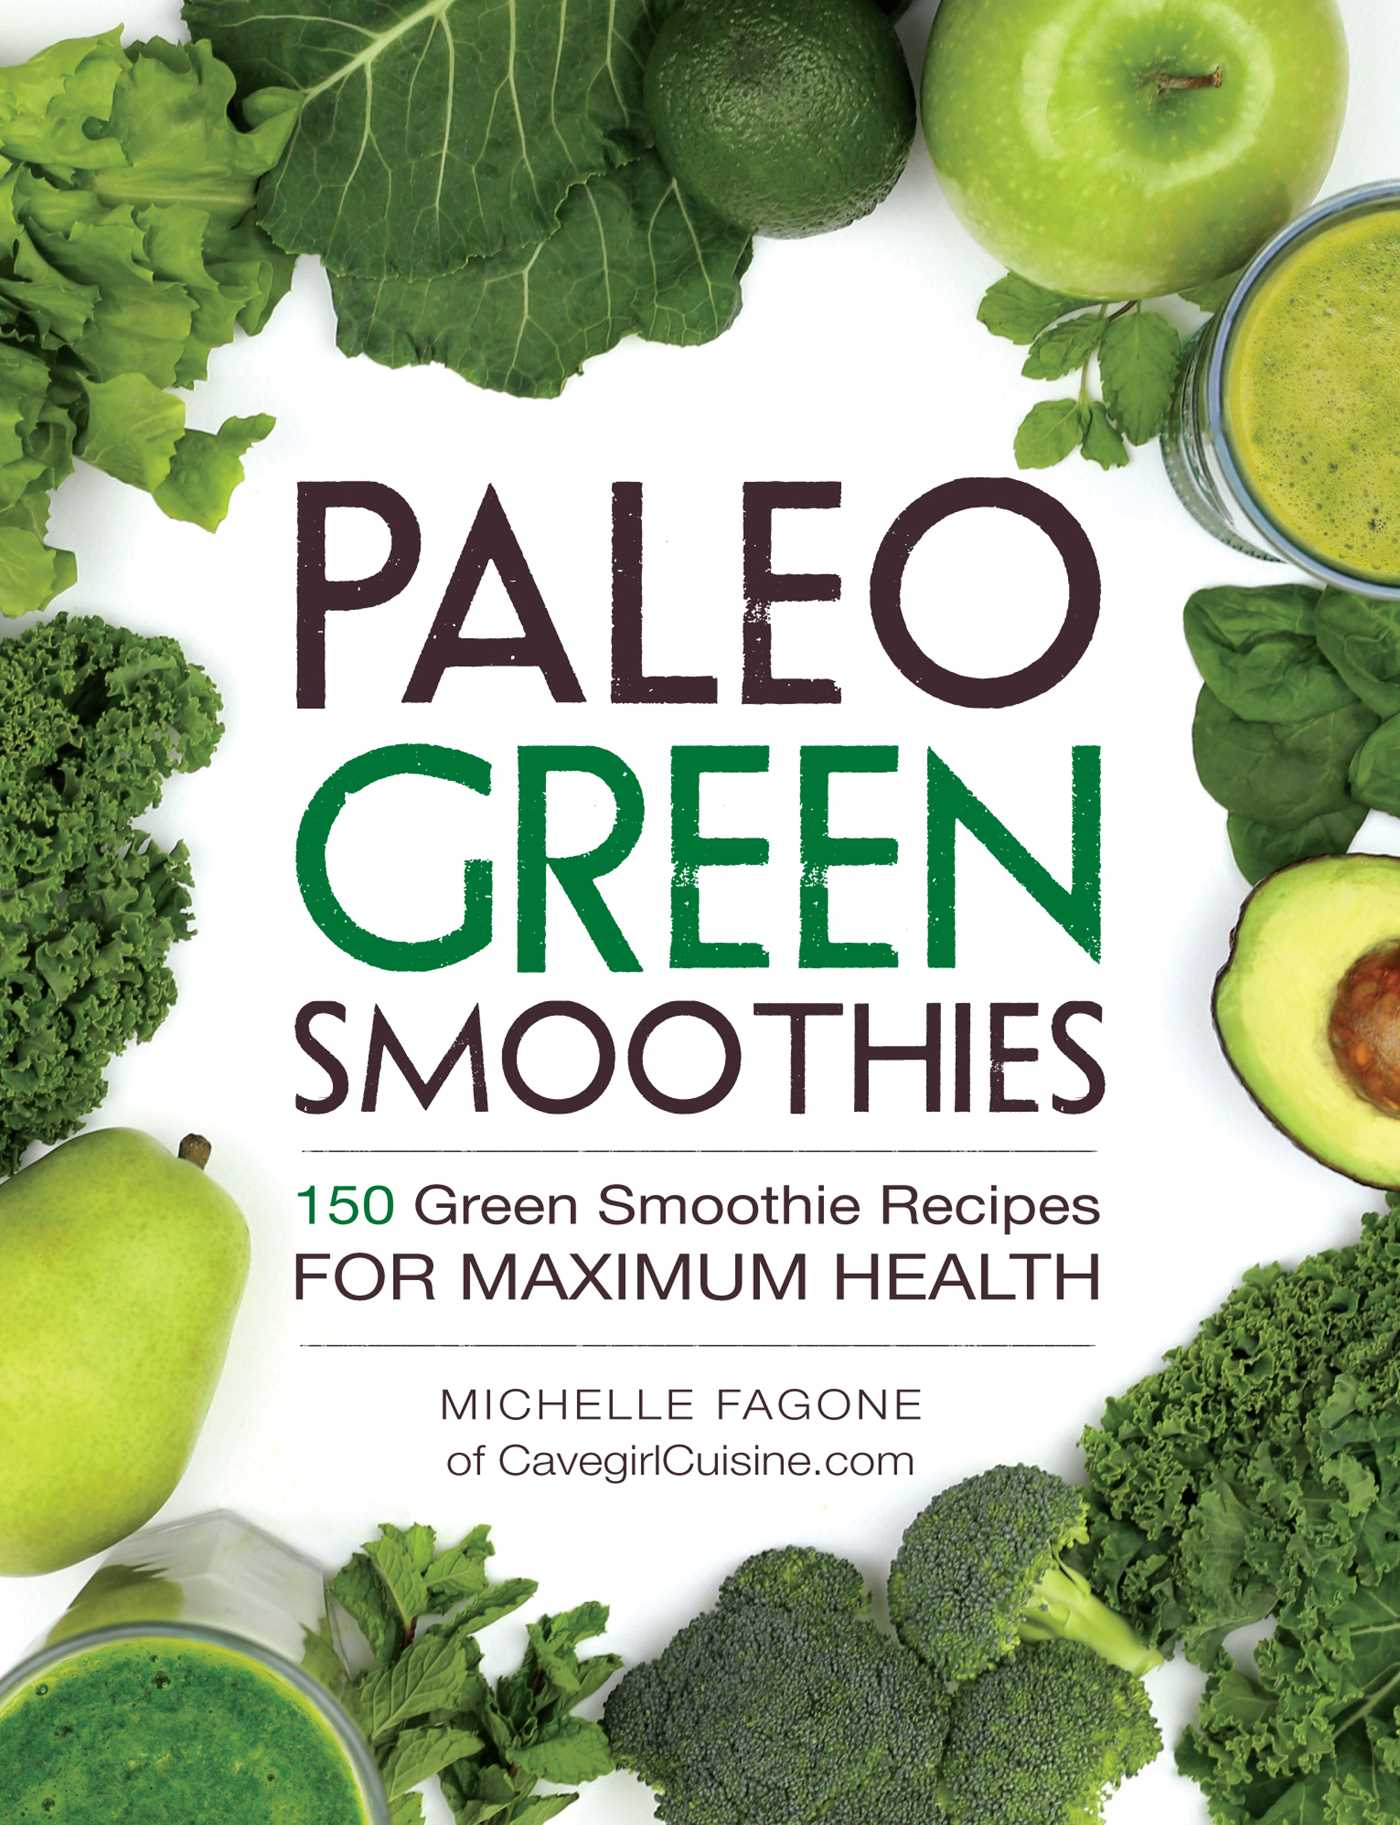 Paleo green smoothies 9781440592935 hr